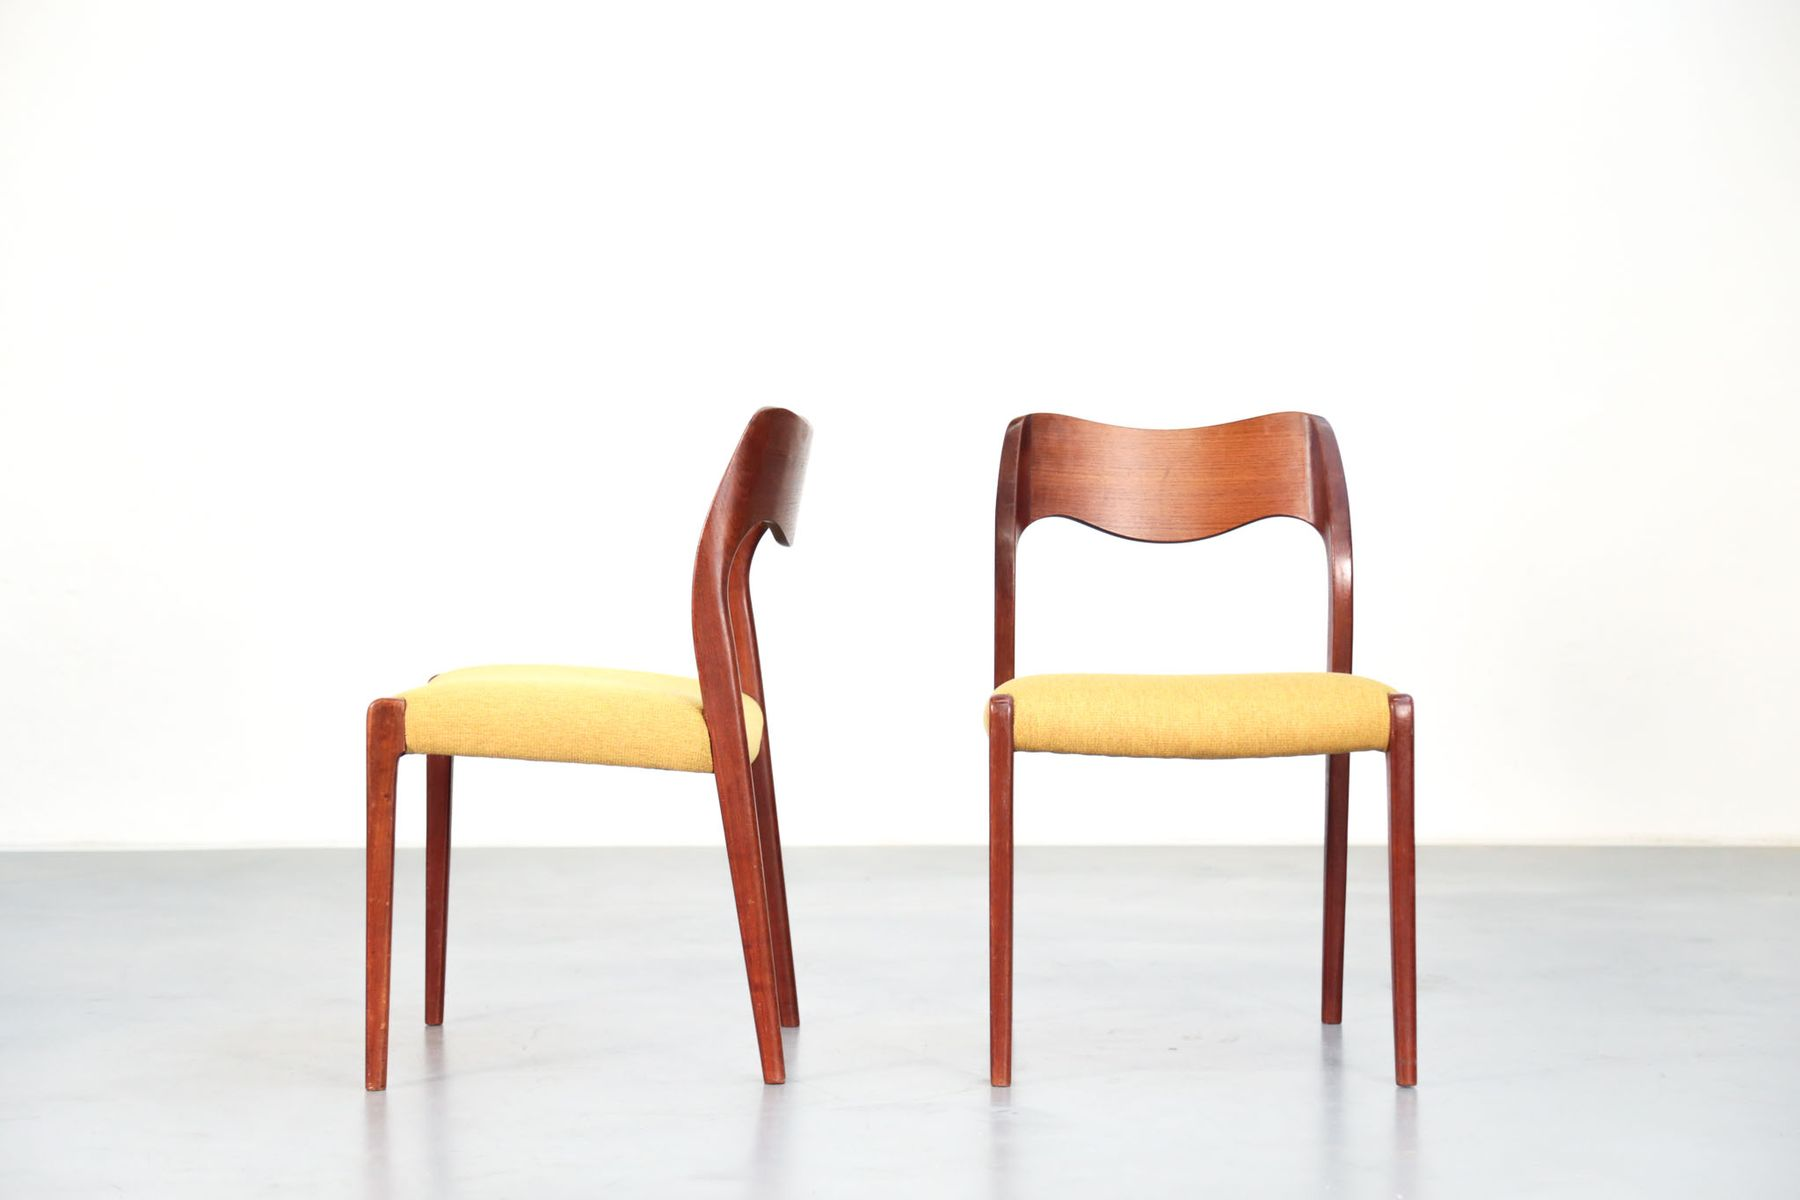 Scandinavian Chairs By Niels Otto Møller For J.L. Møllers, Set Of 5